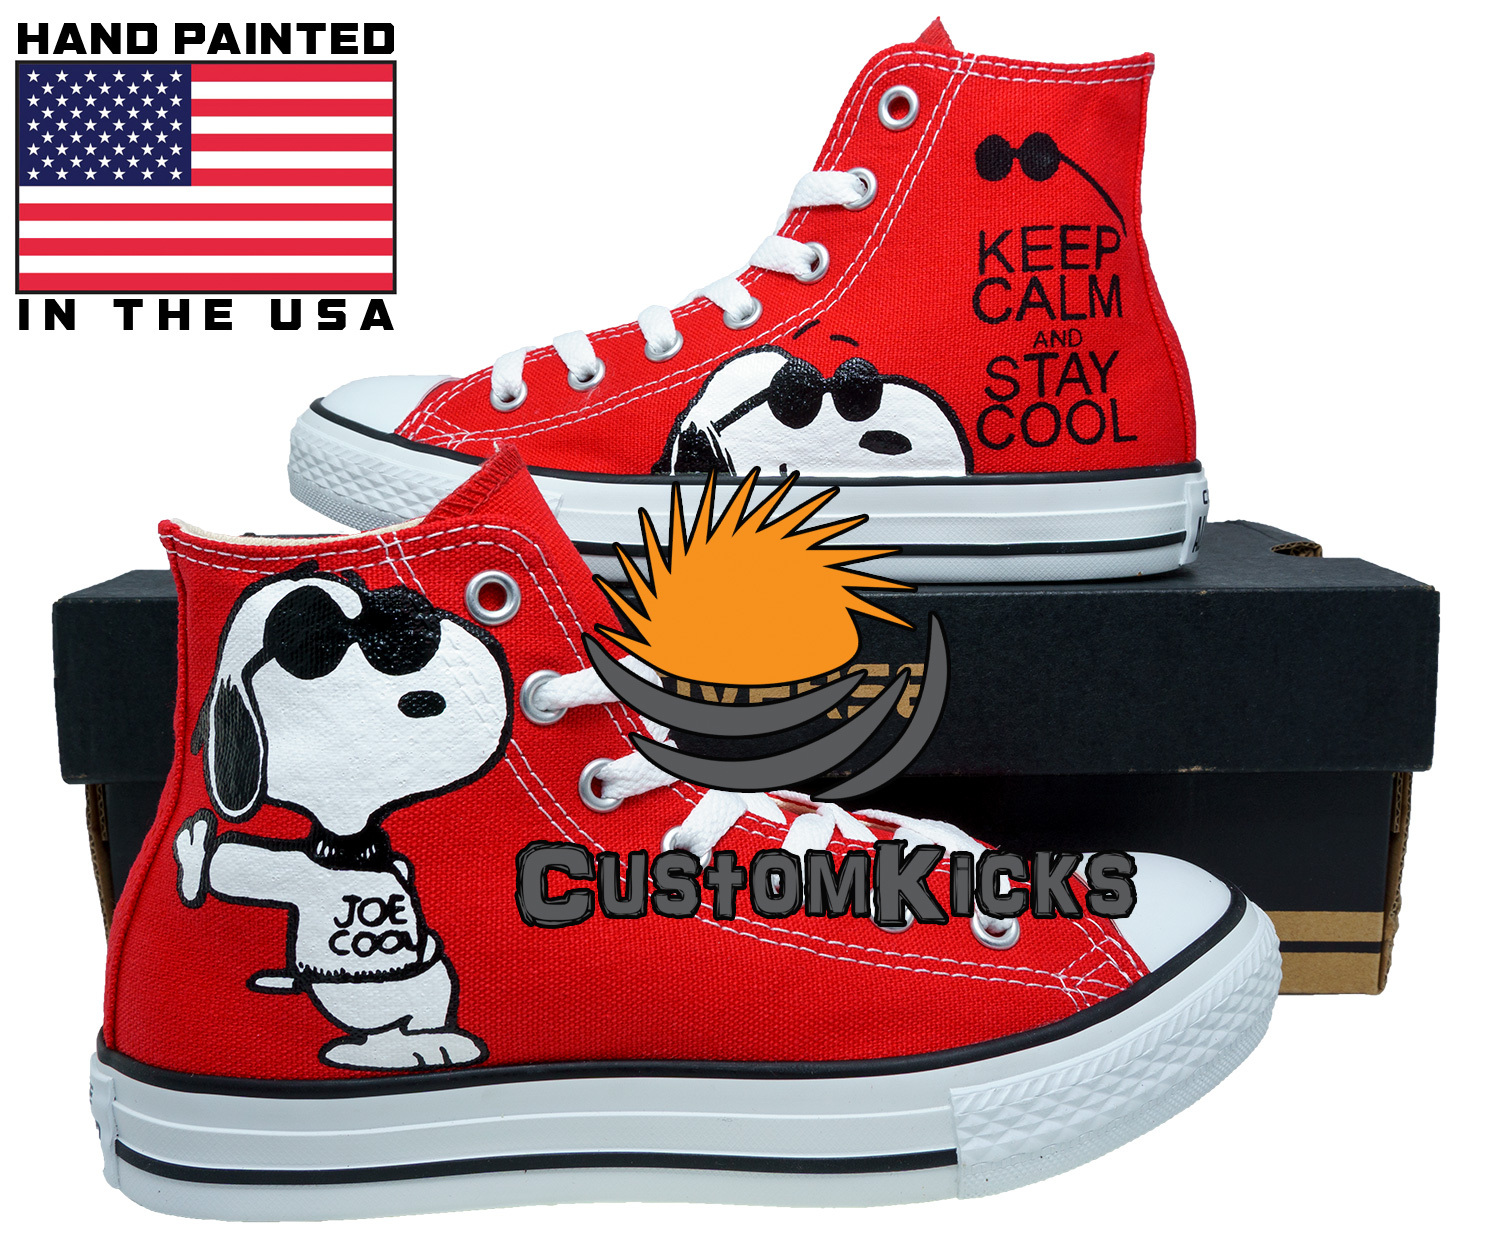 Painted converse sneakers, Snoopy, Keep Calm, Peanuts, Hand painted shoes for sale  USA